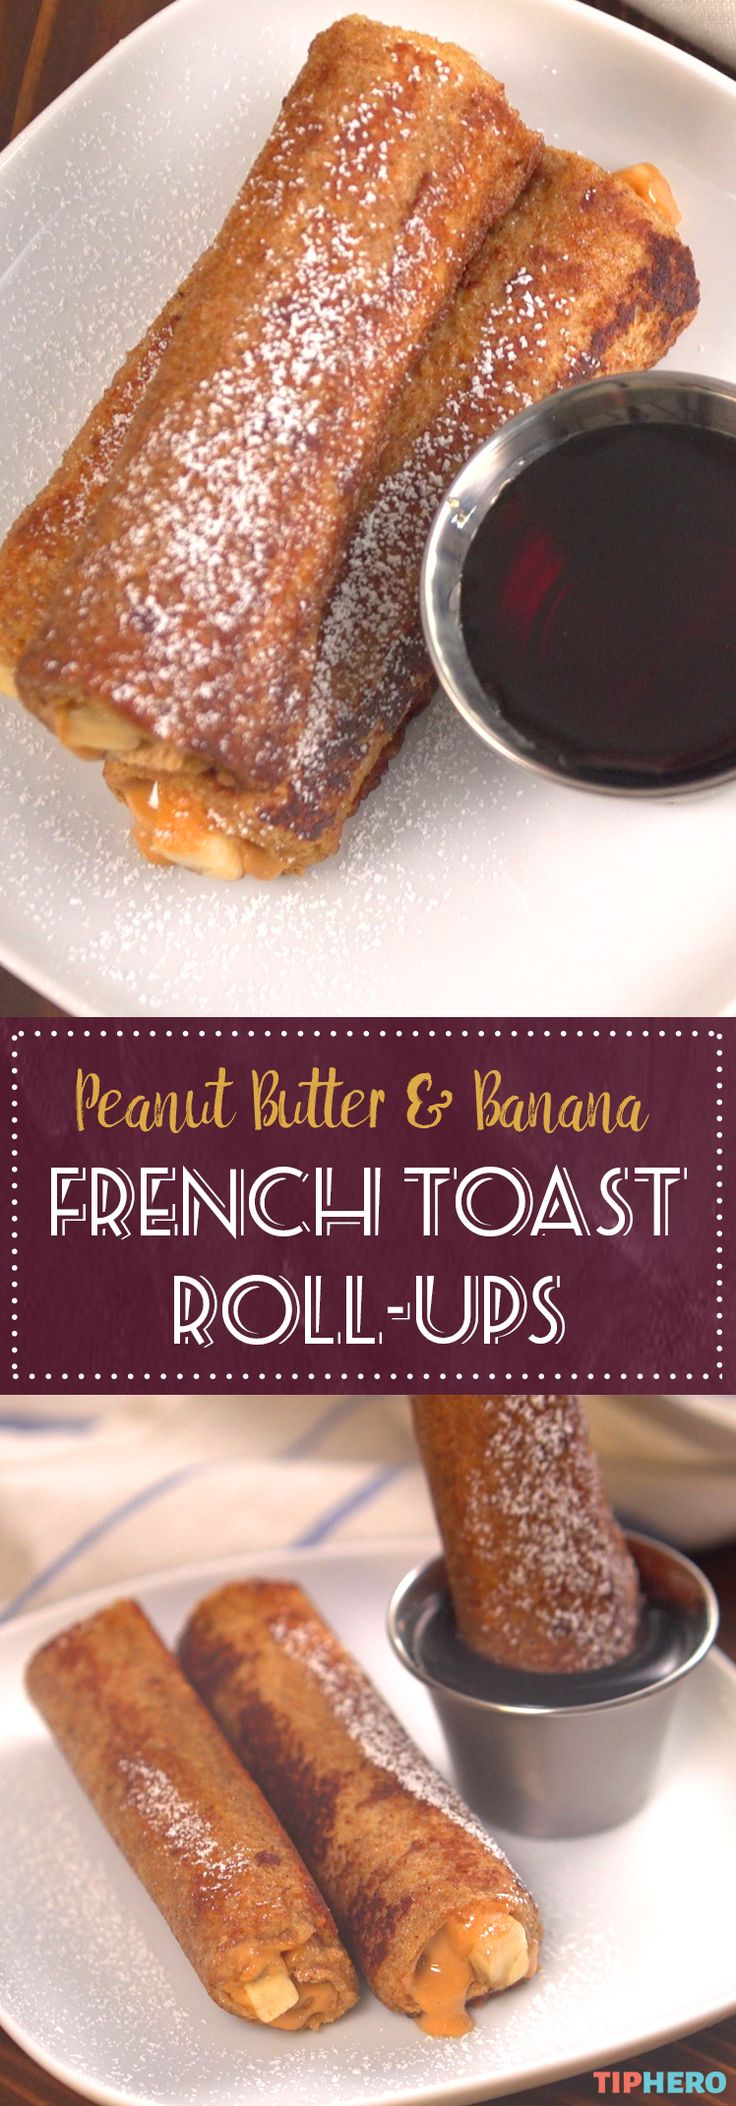 Peanut Butter & Banana French Toast Roll-up Recipe | French toast is an all-time breakfast favorite. Add a extra health boost and start your day off right by rolling in peanut butter and banana. Yum! Click for the video and recipe.  #breakfast #brunch #healthyrecipes #yum